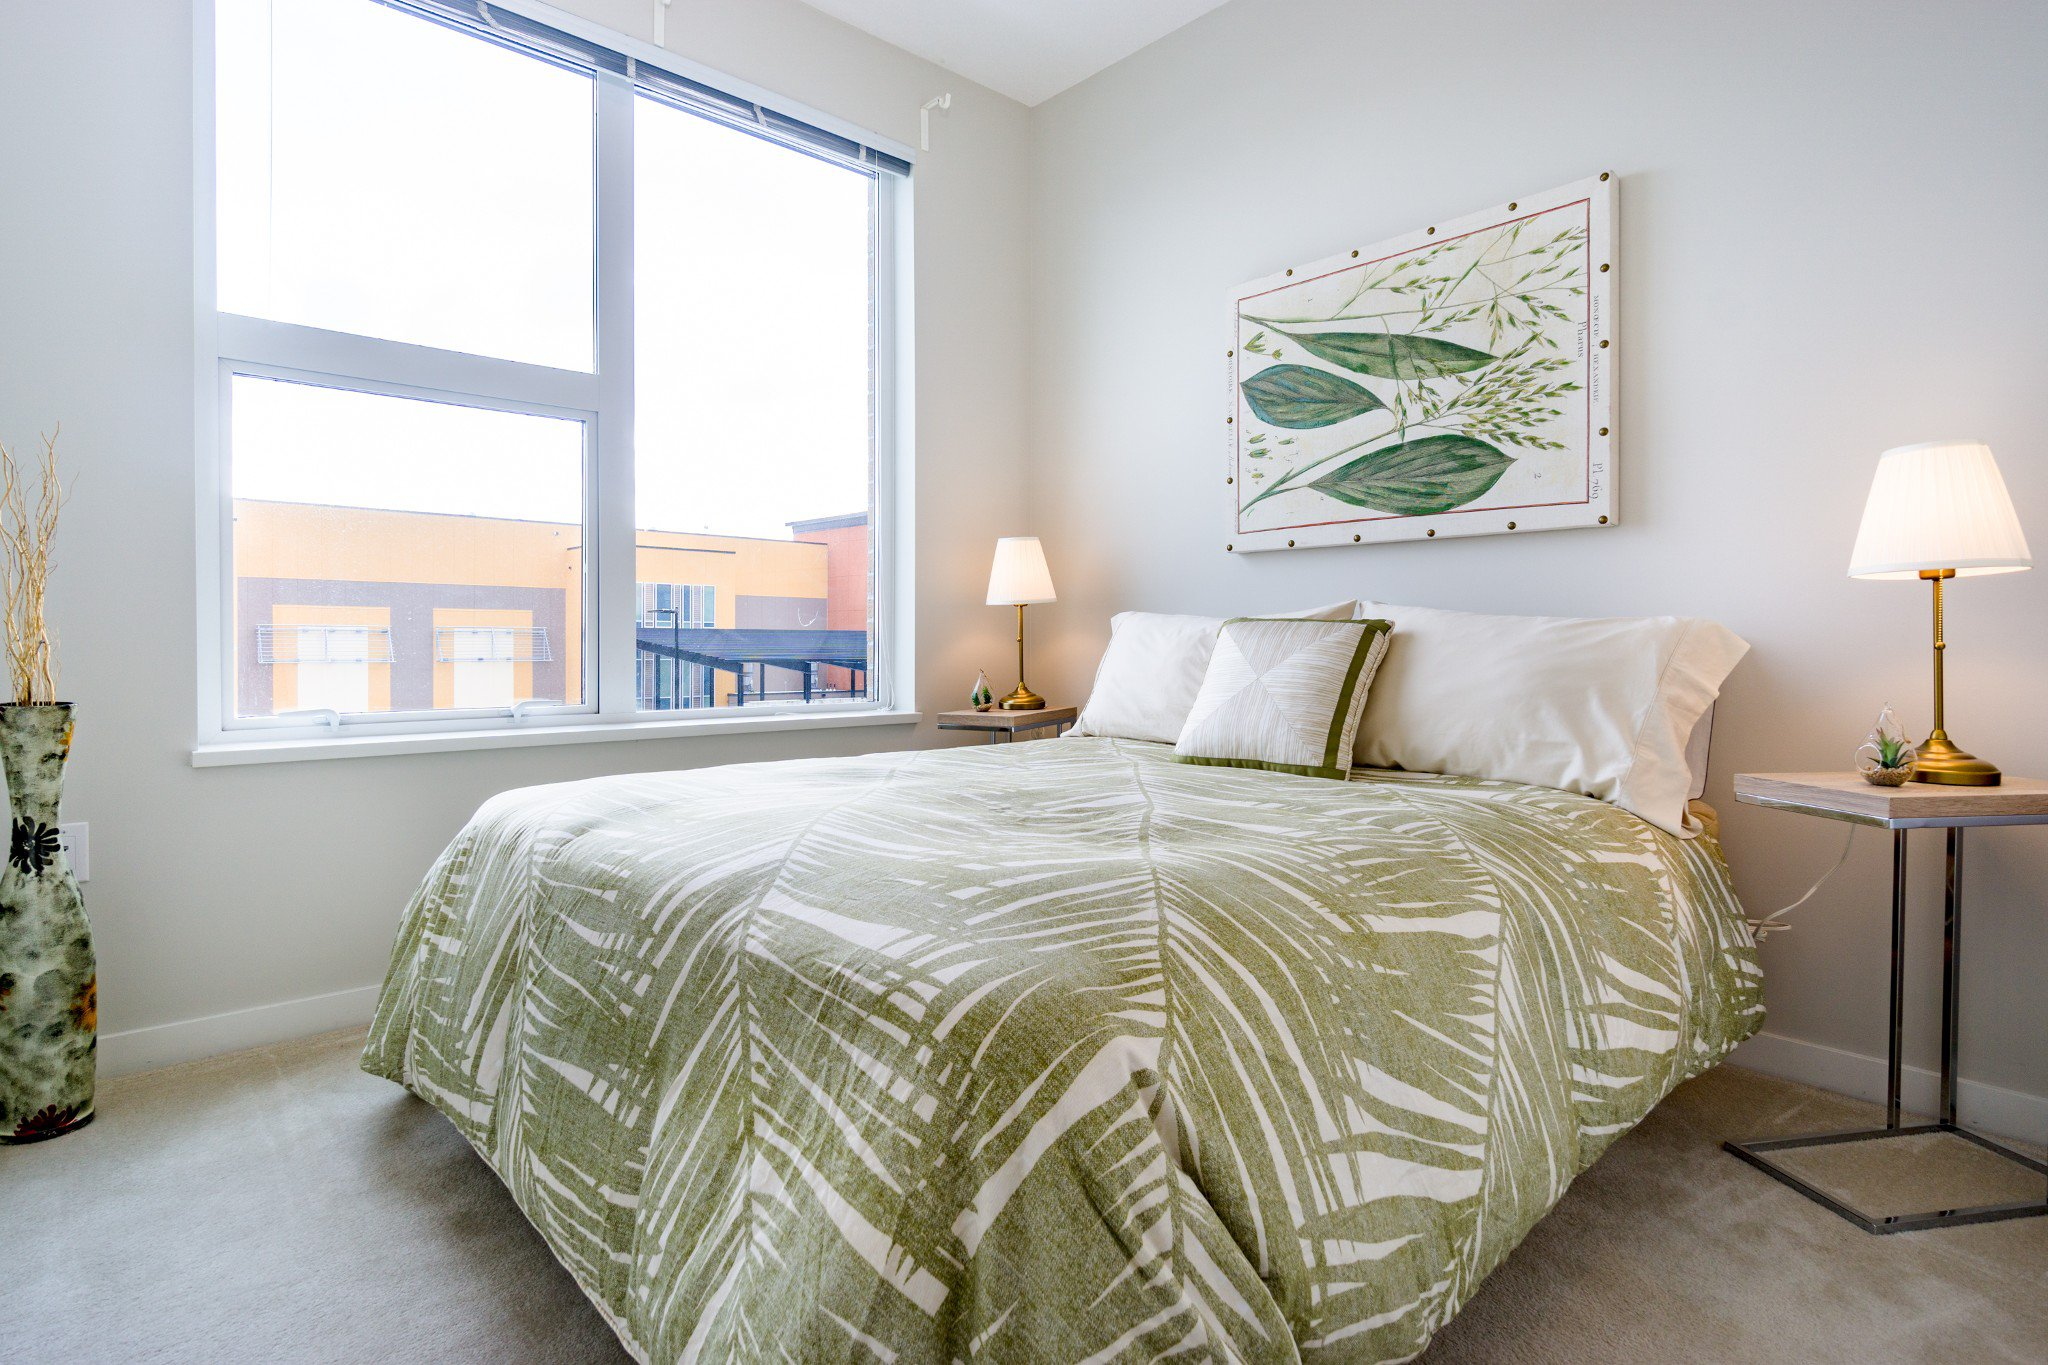 """Photo 22: Photos: 303 9311 ALEXANDRA Road in Richmond: West Cambie Condo for sale in """"ALEXANDRA COURT"""" : MLS®# R2347629"""